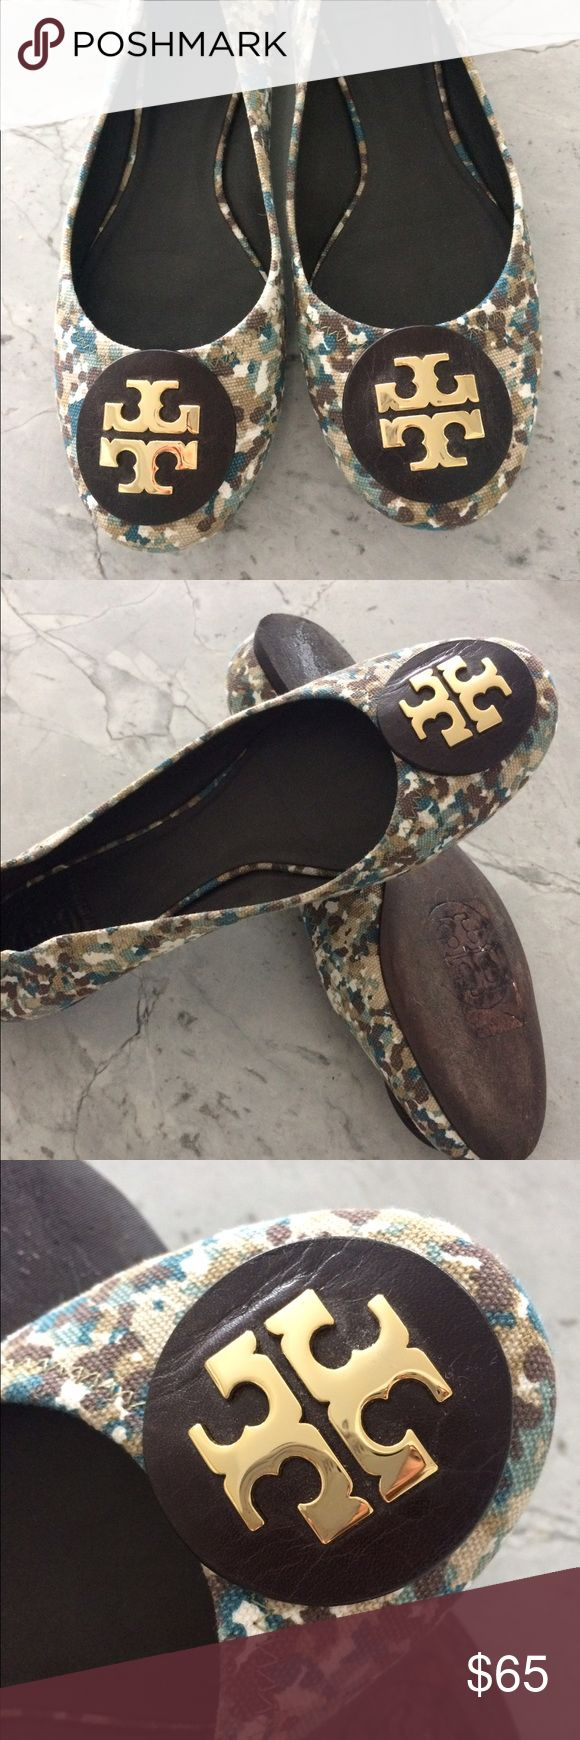 Tory Burch fabric and leather flats Tory Burch fabric and leather flats. Size 9 and 1/2. I can wear 9 or 9.5 in these flats. These are loved worn bottom but the top looks pretty good condition.  If you're looking for perfect TB flats these are not them but they look oh so cute when they are on. Leather sole and leather circle with gold Tory symbol in the middle. Lots of compliments. I purchased these at the Nord Rack. Tory Burch Shoes Flats & Loafers